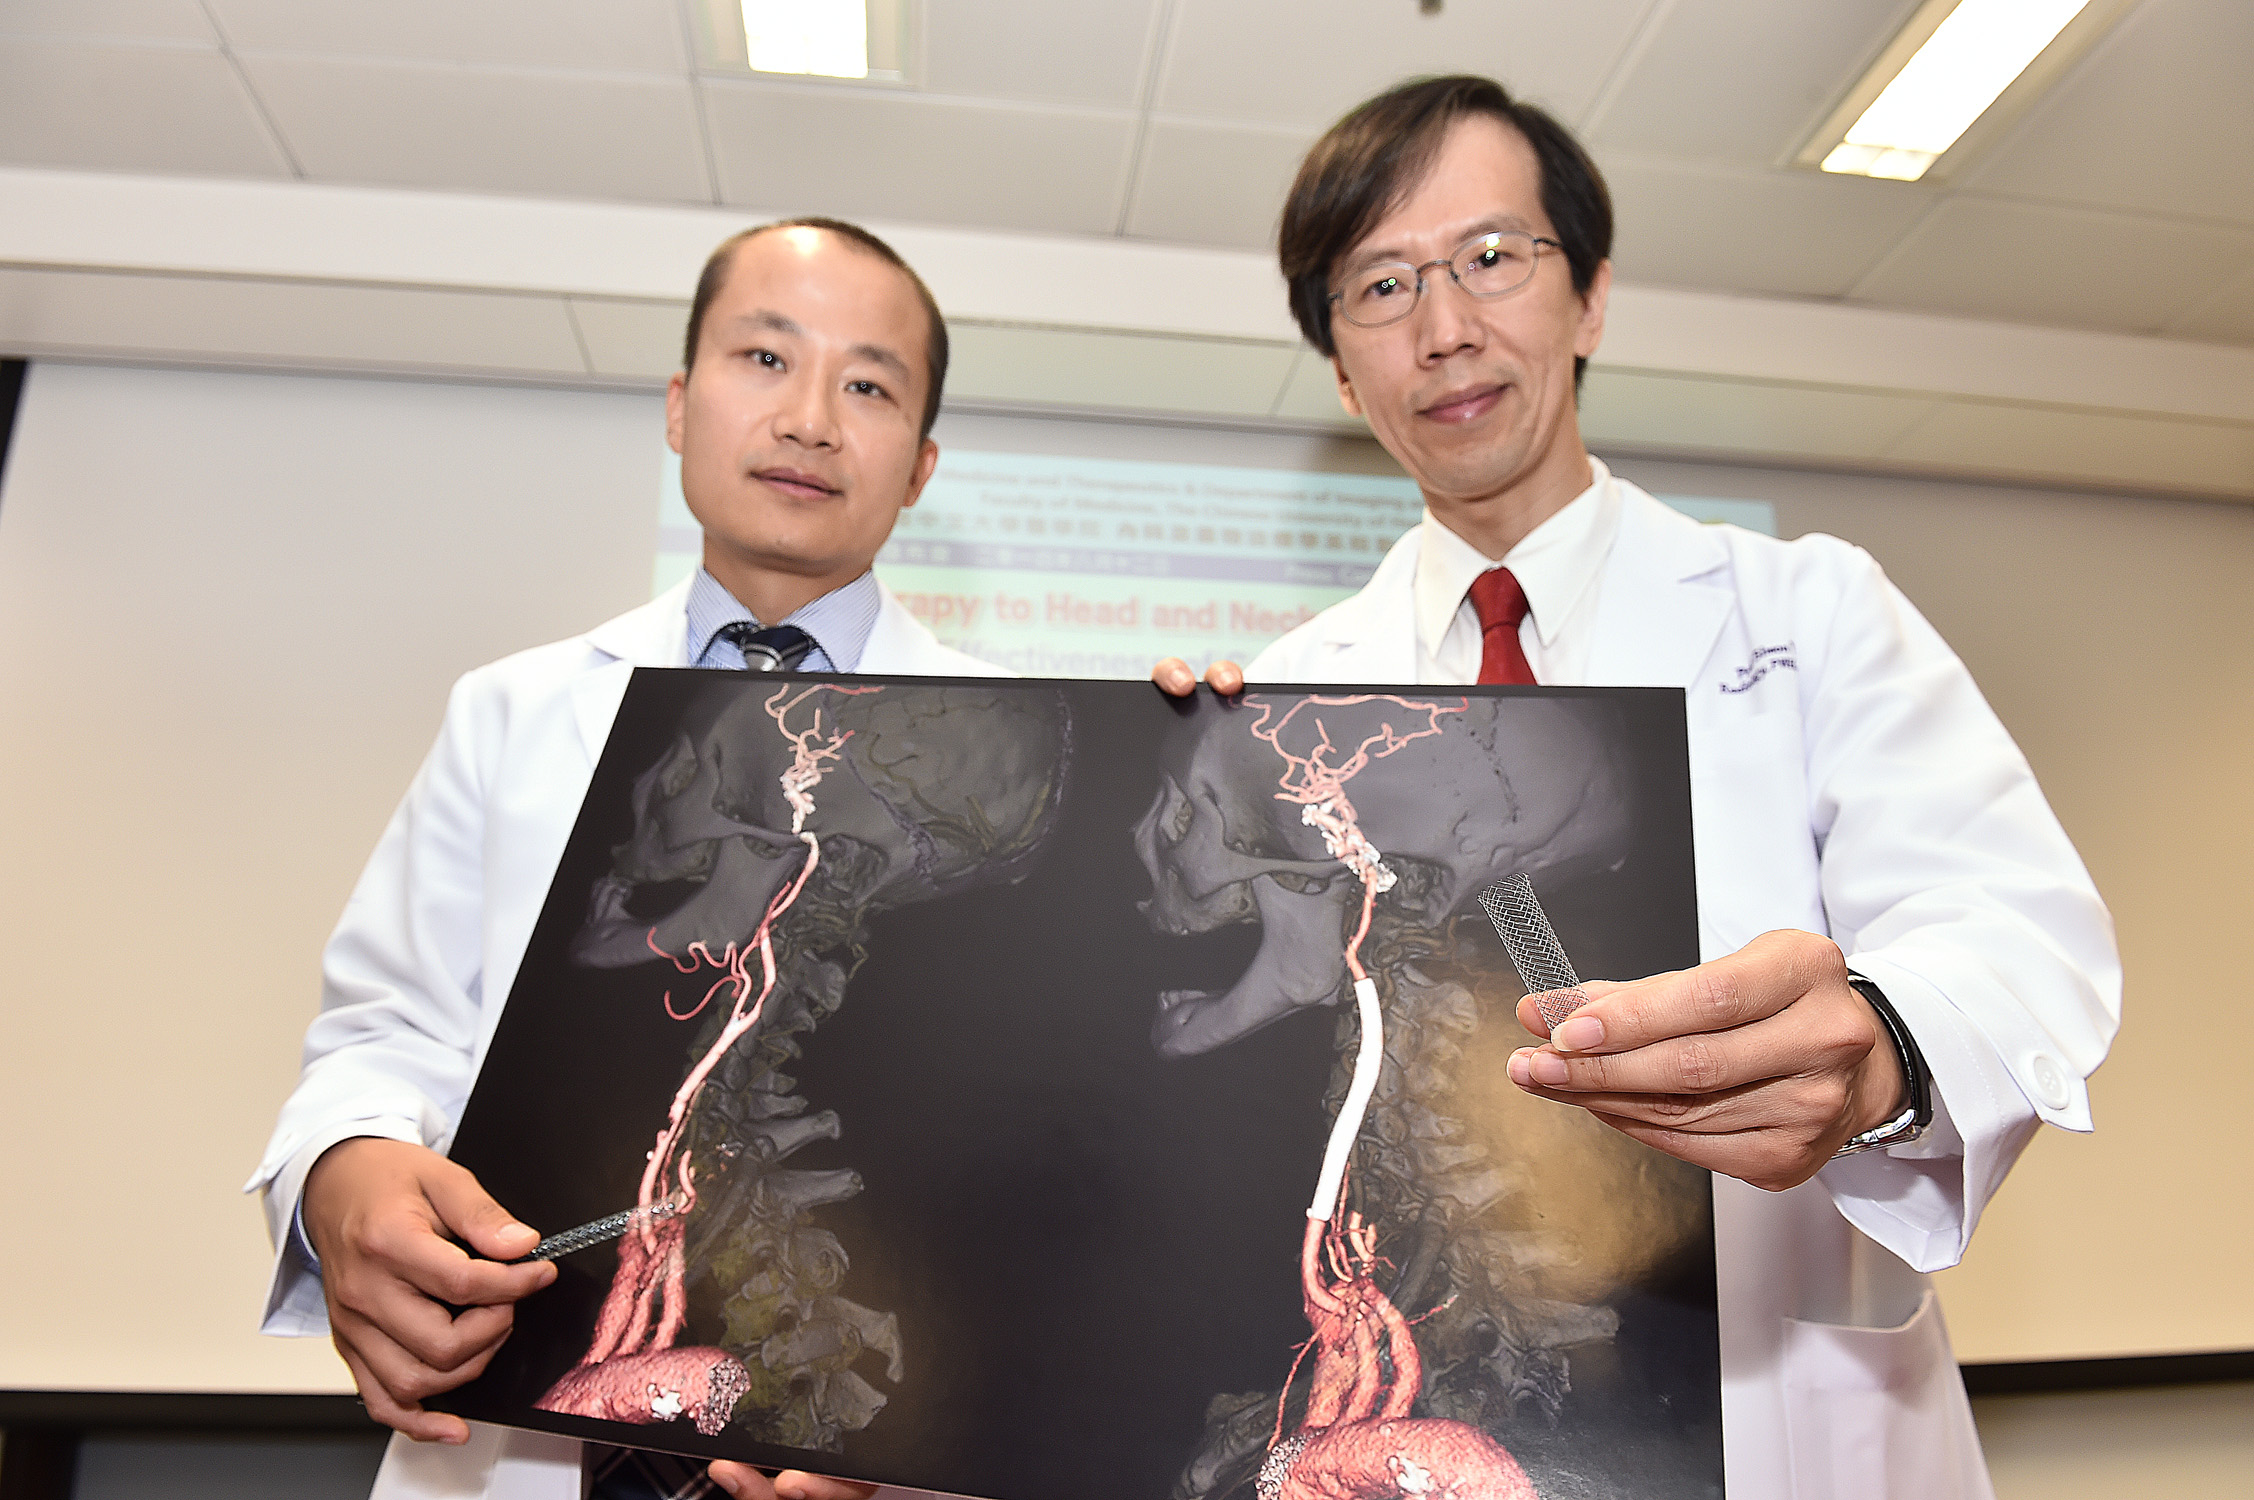 Dr. Thomas Leung (left), Lee Quo Wei Associate Professor of Neurology, Department of Medicine and Therapeutics